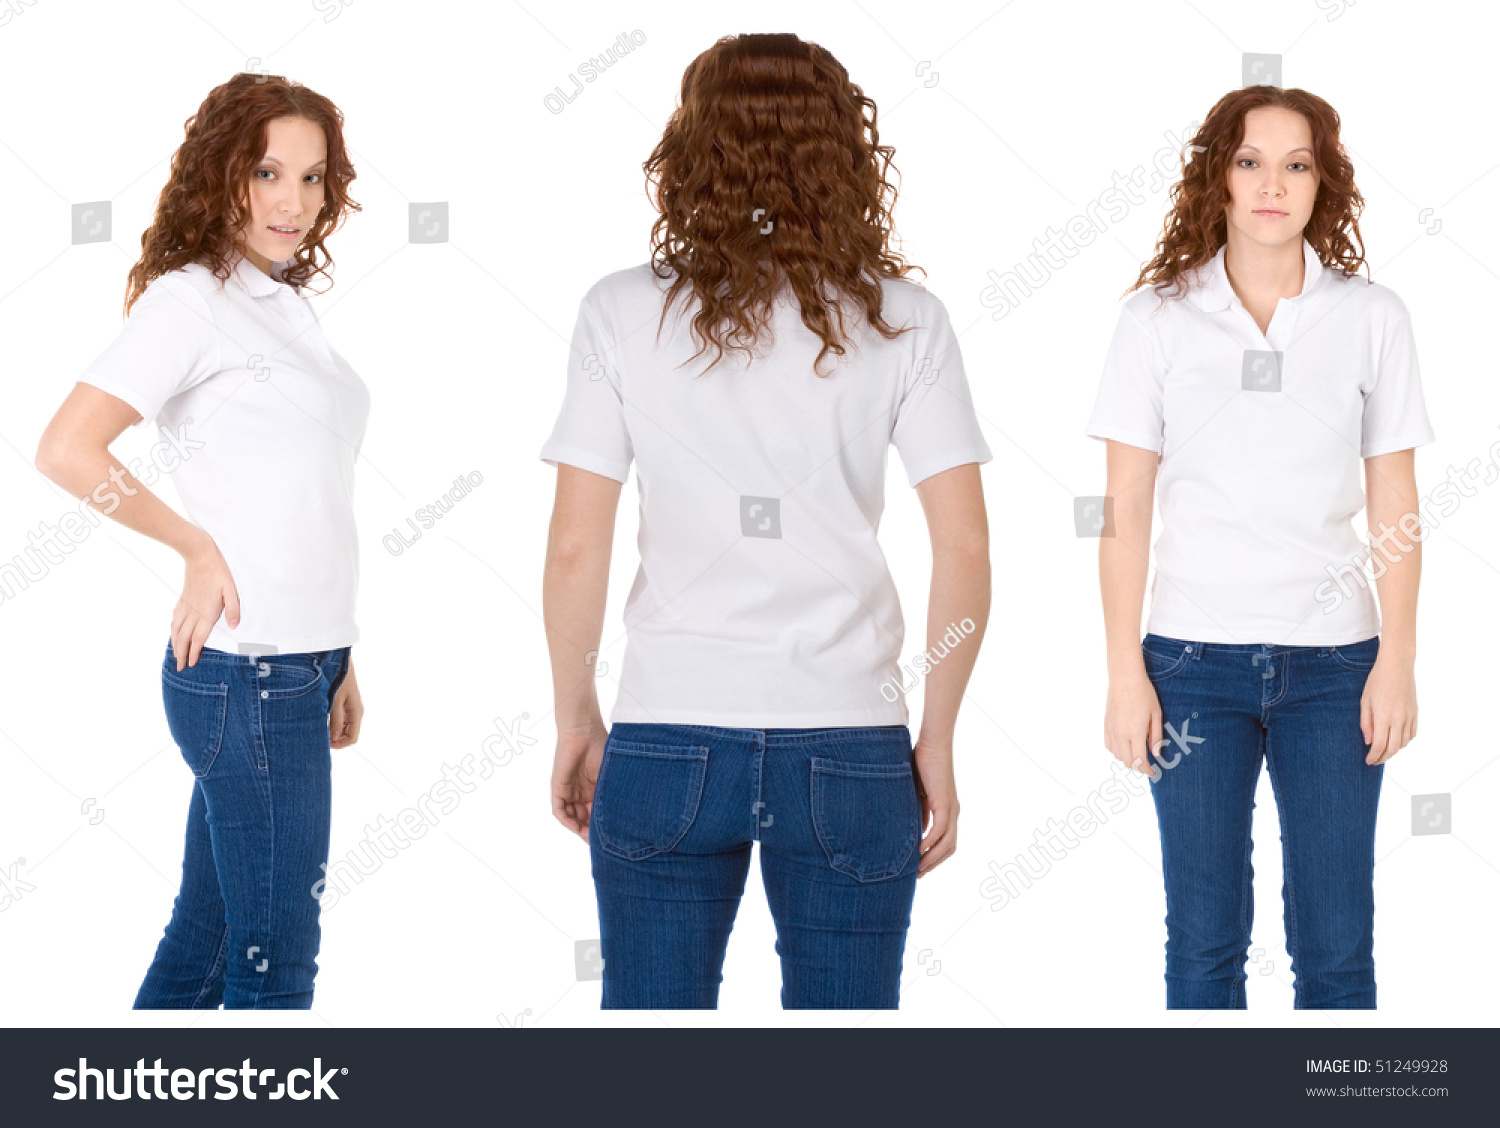 White t shirt blue jeans - Fashion Model In White T Shirt And Blue Jeans Multiple Angles